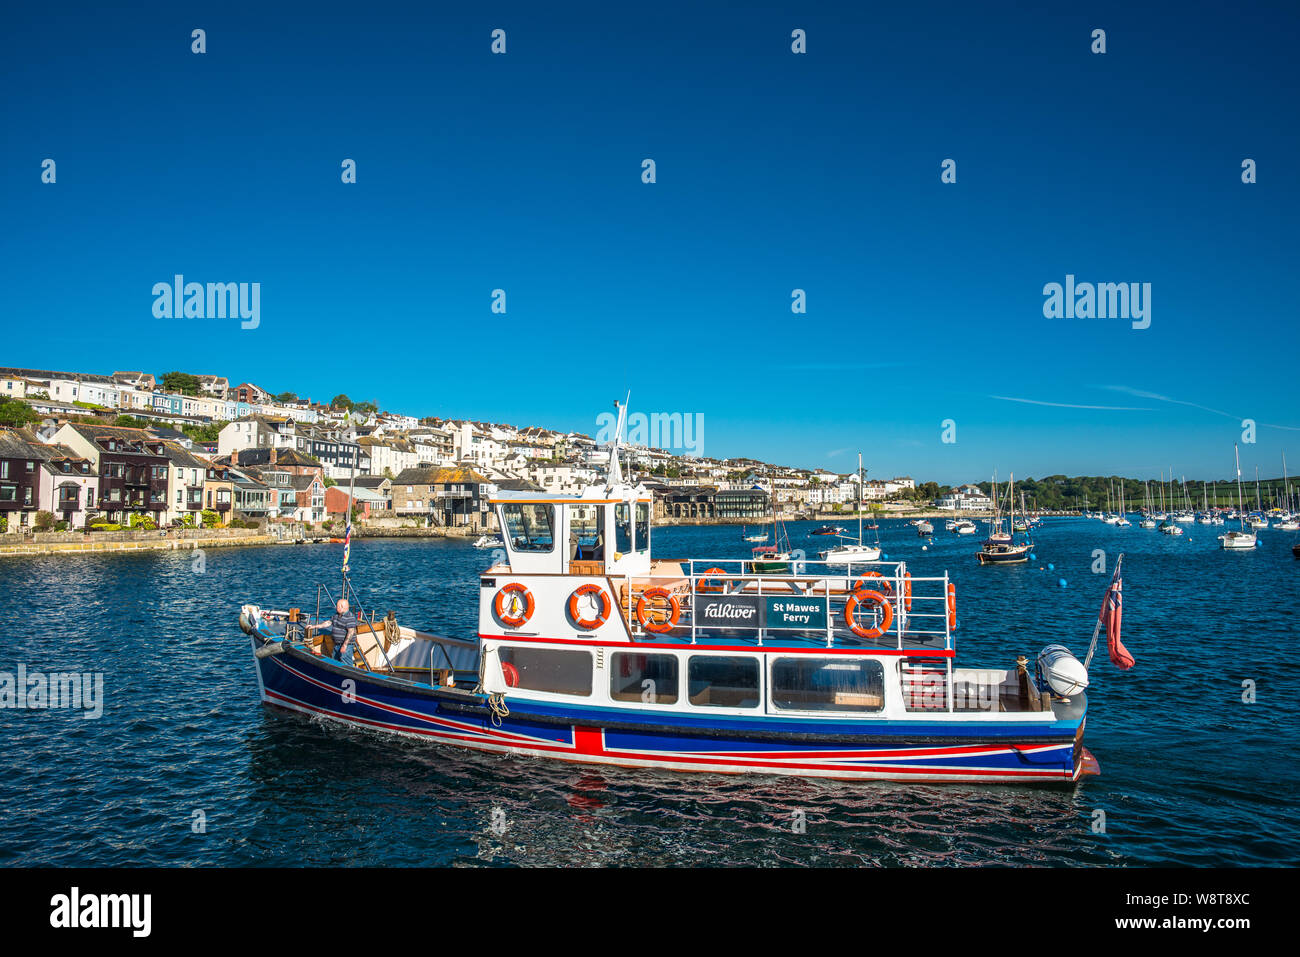 The Falmouth to St Mawes ferry on River Fal estuary with Falmouth to the rear. Cornwall, England, UK. Stock Photo